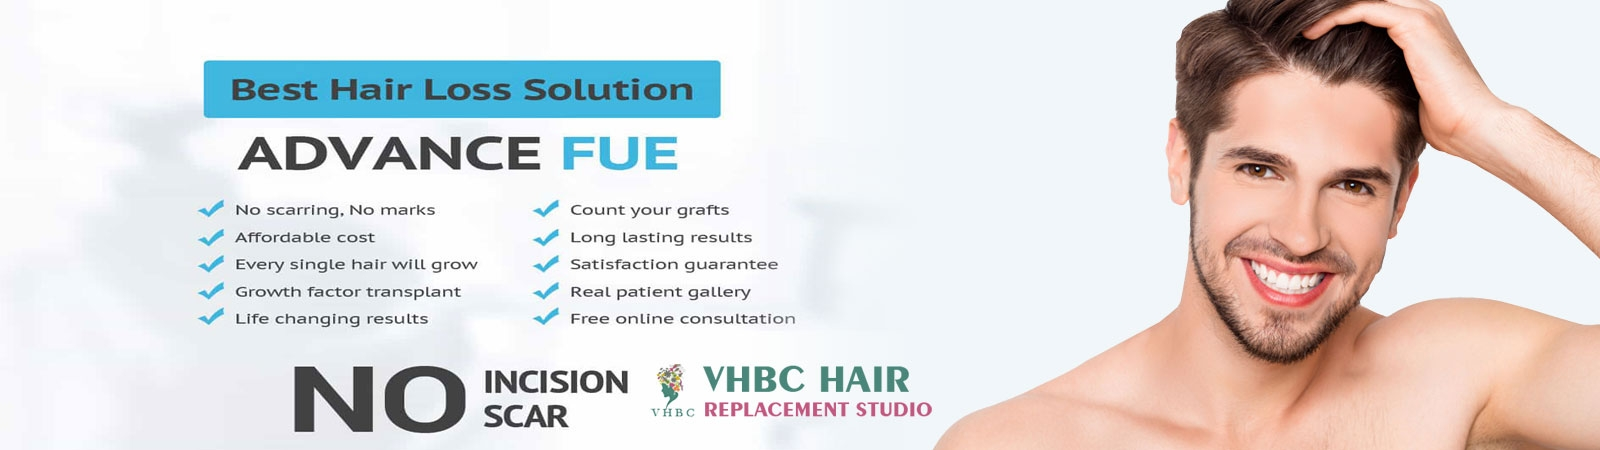 VHBC Hair Replacement Studio (@vhbchairsolution) Cover Image